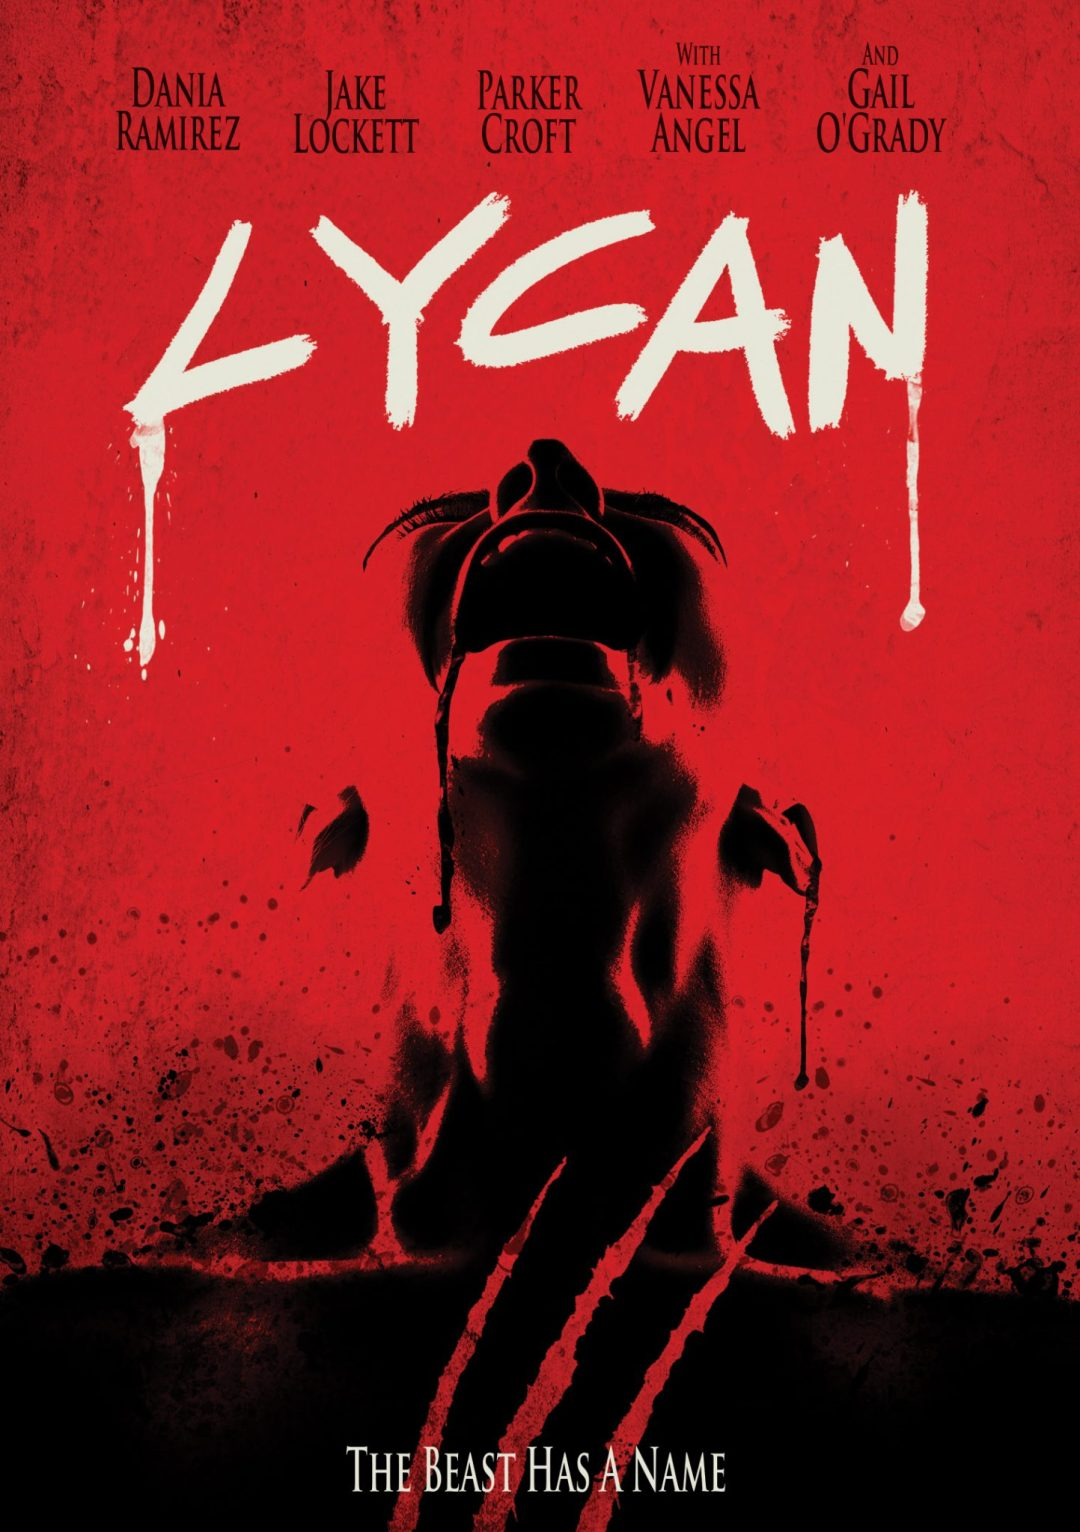 'Lycan' Opens Theatrically 8/4 and Comes to Home Video 9/26